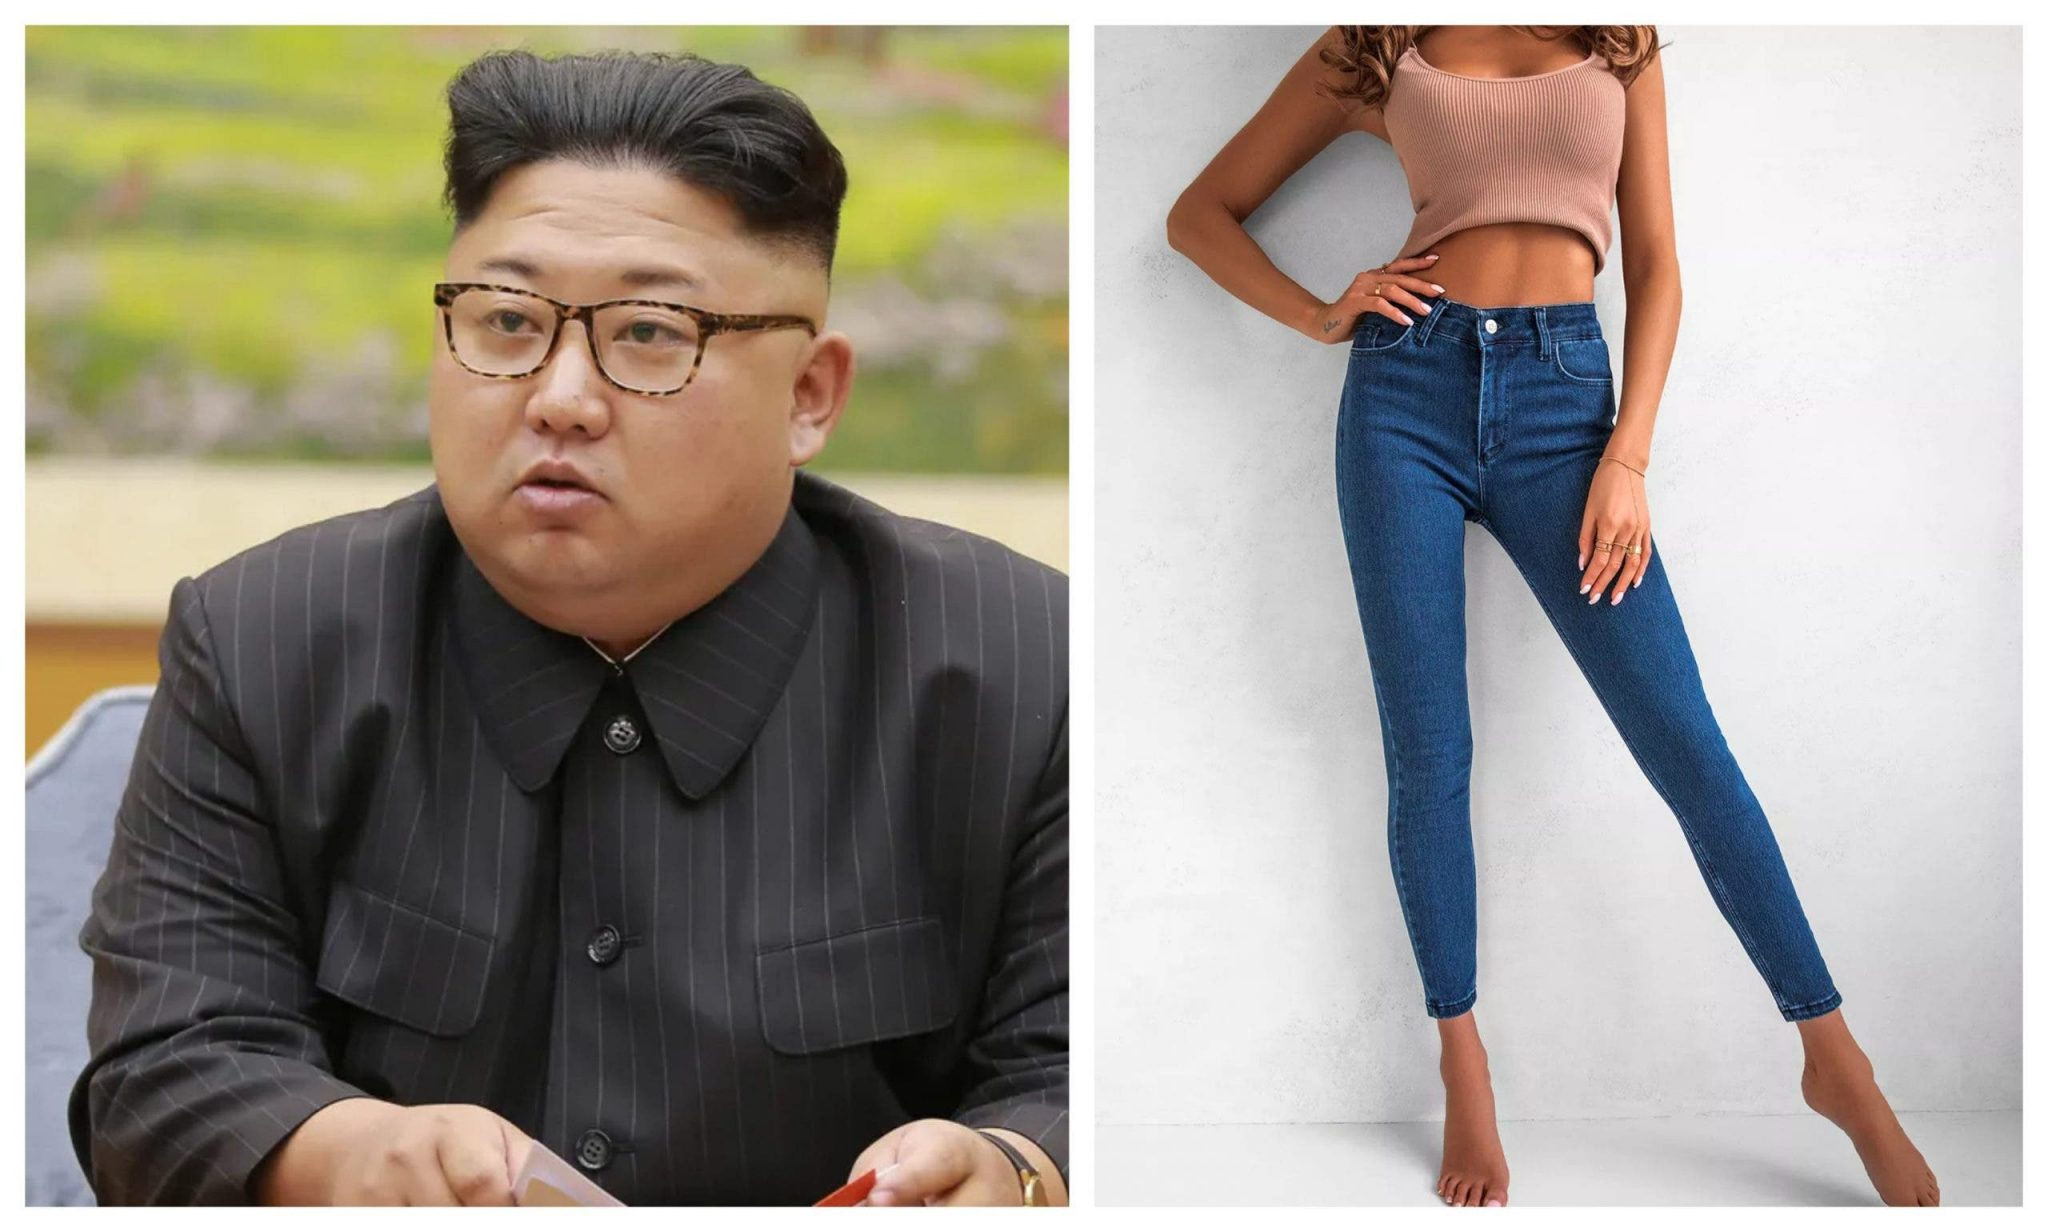 President Kim Jong un bans skinny jeans in North Korea lailasnews 3 scaled 1 scaled